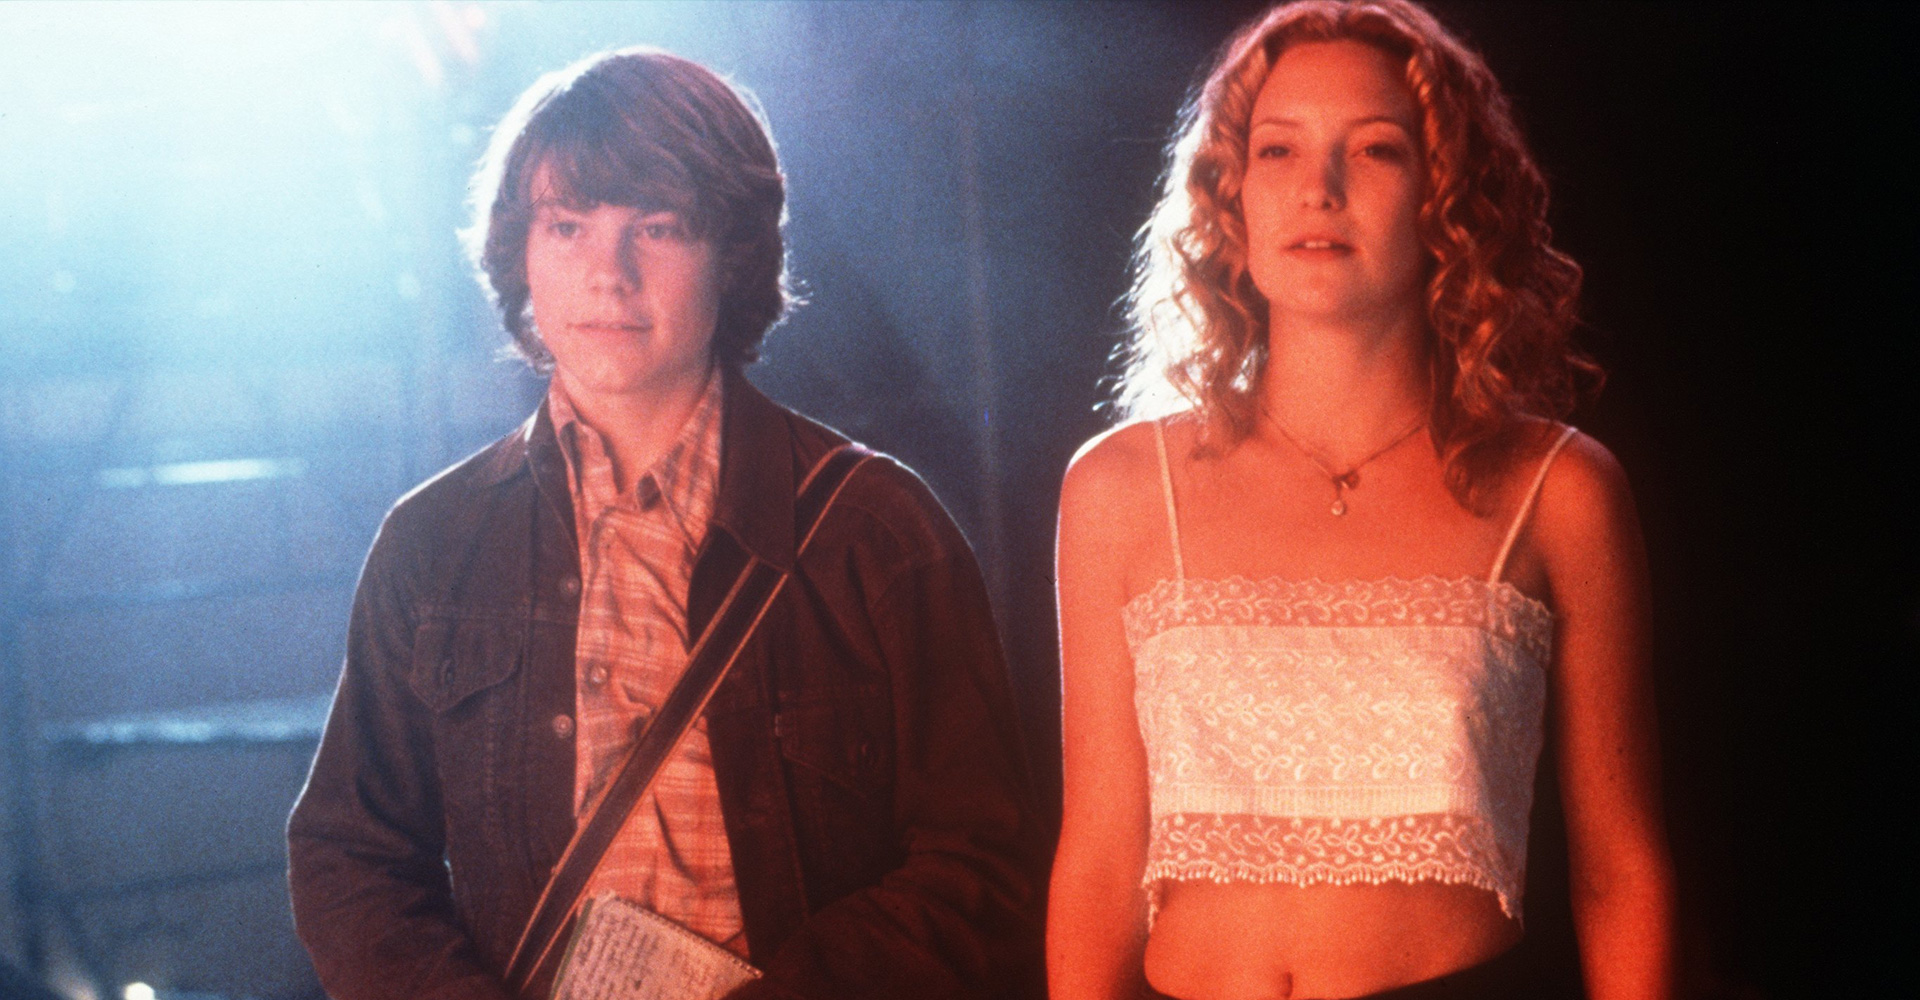 Coming-of-age Movies: Angela